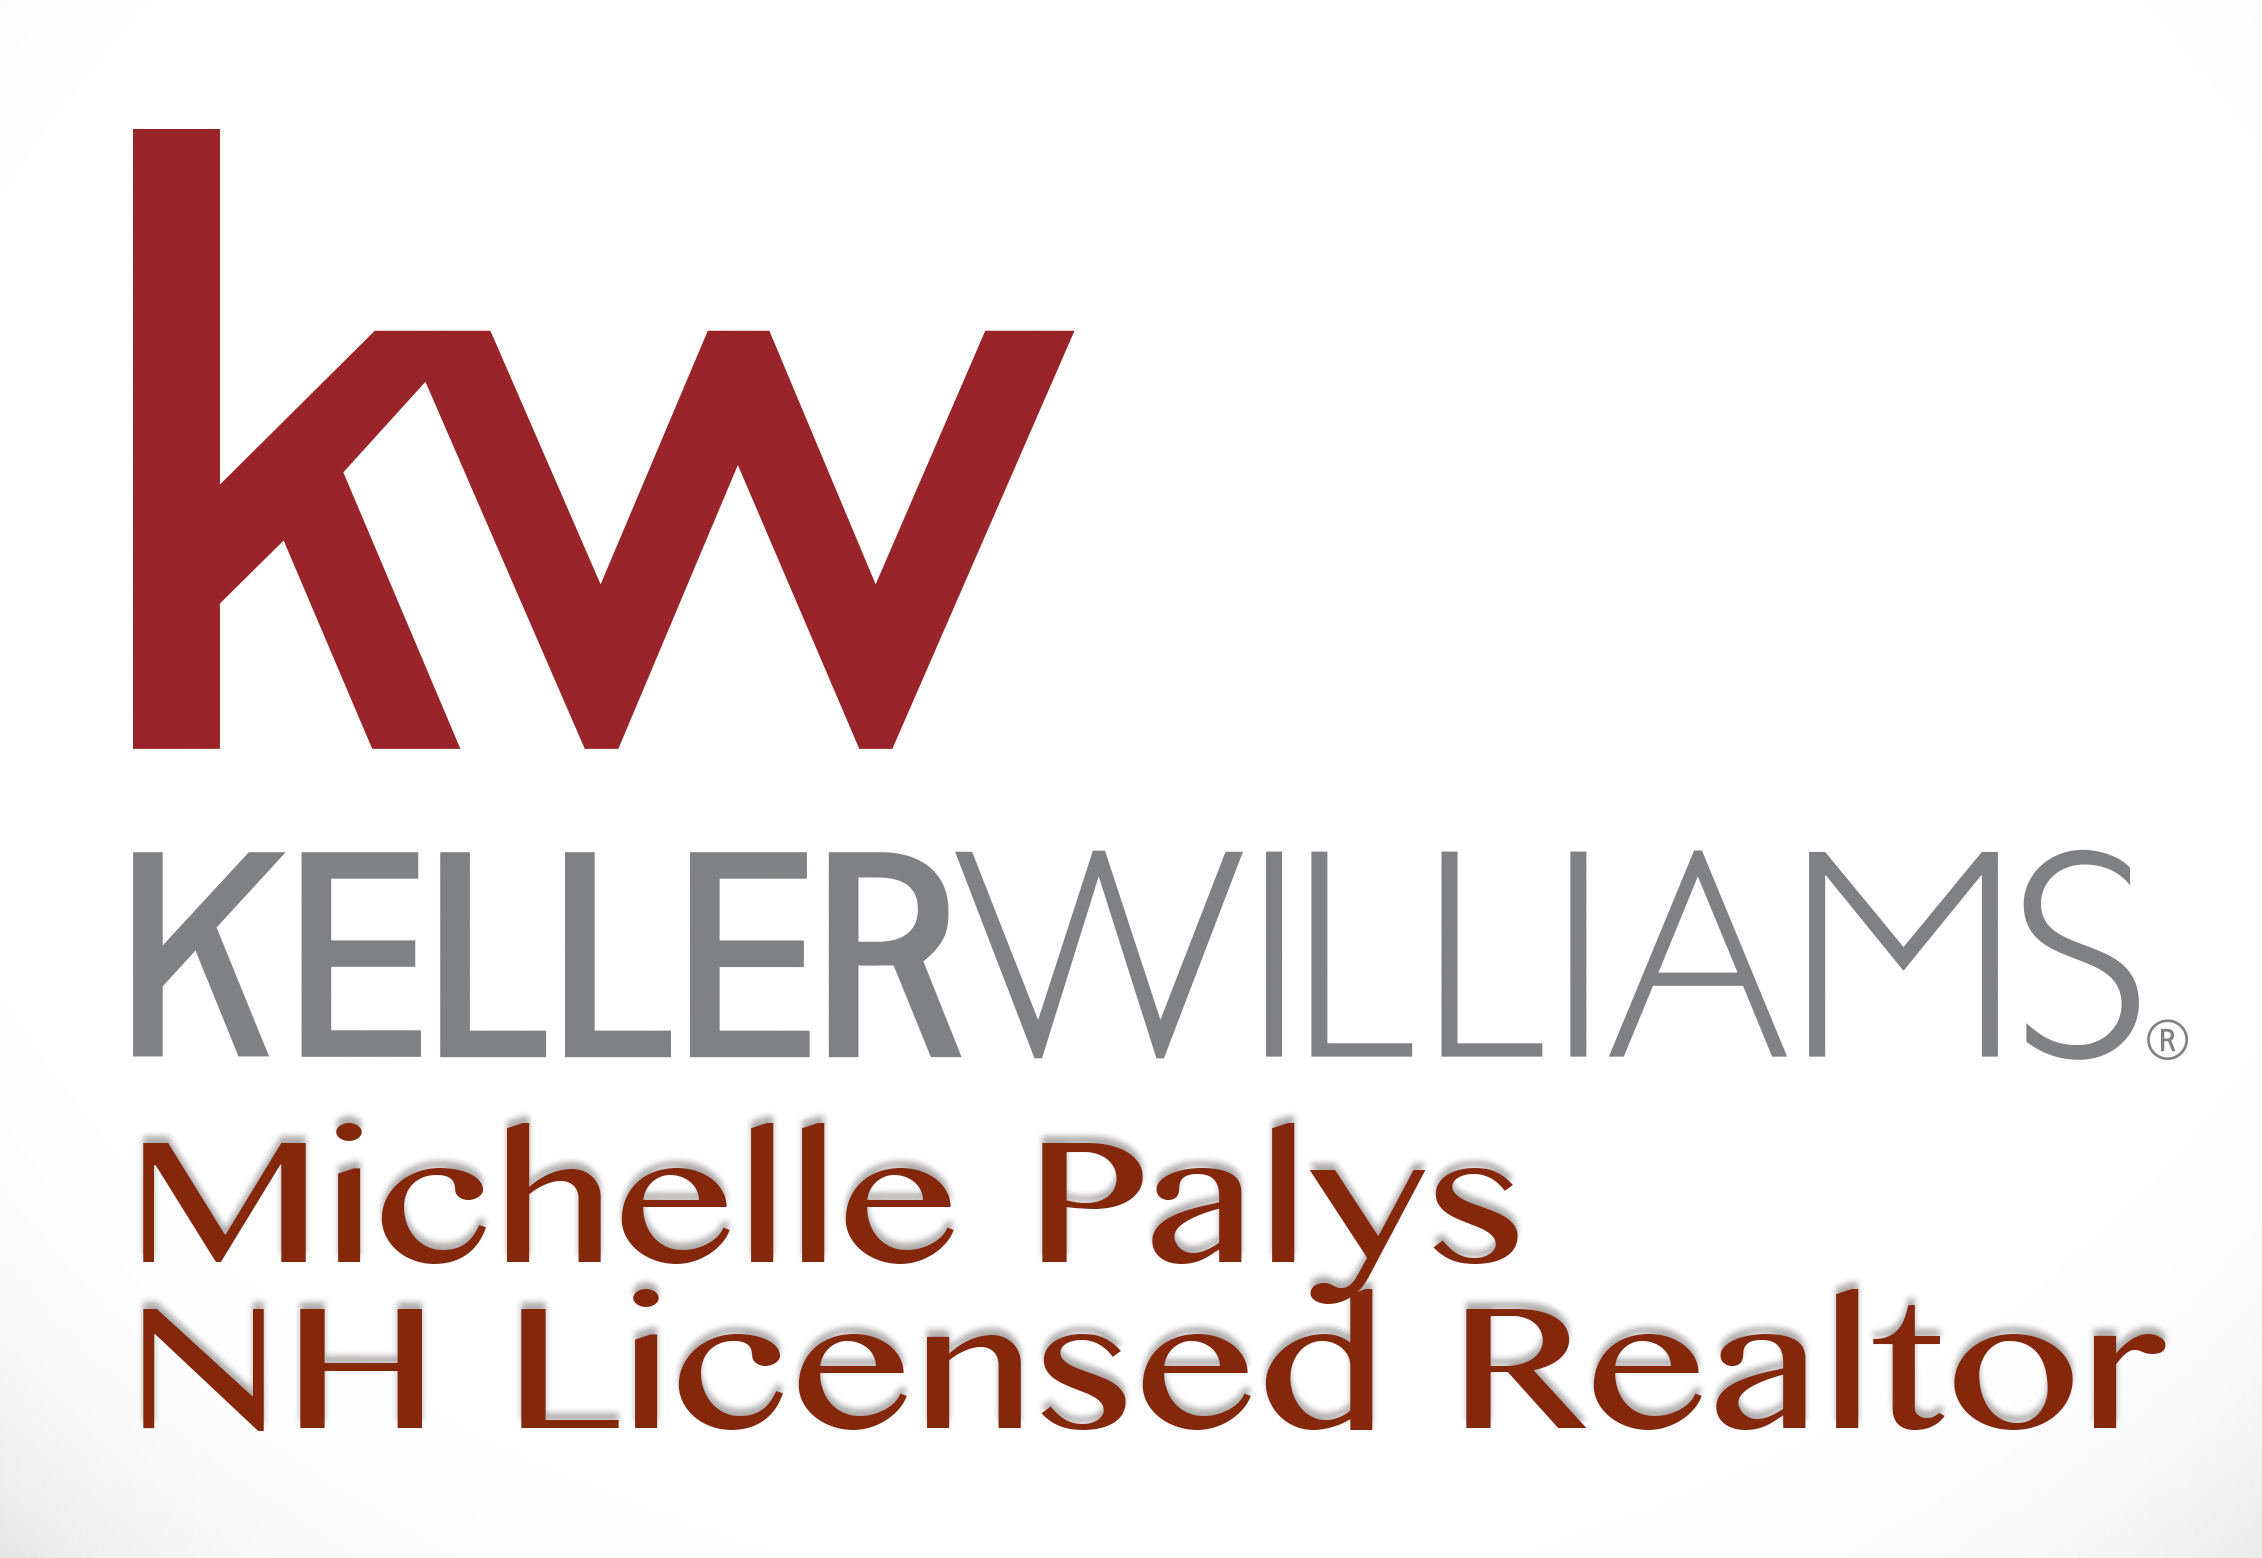 Michelle Palys is a Keller Williams Realty Metropolitan Licensed NH Real Estate Agent & Realtor